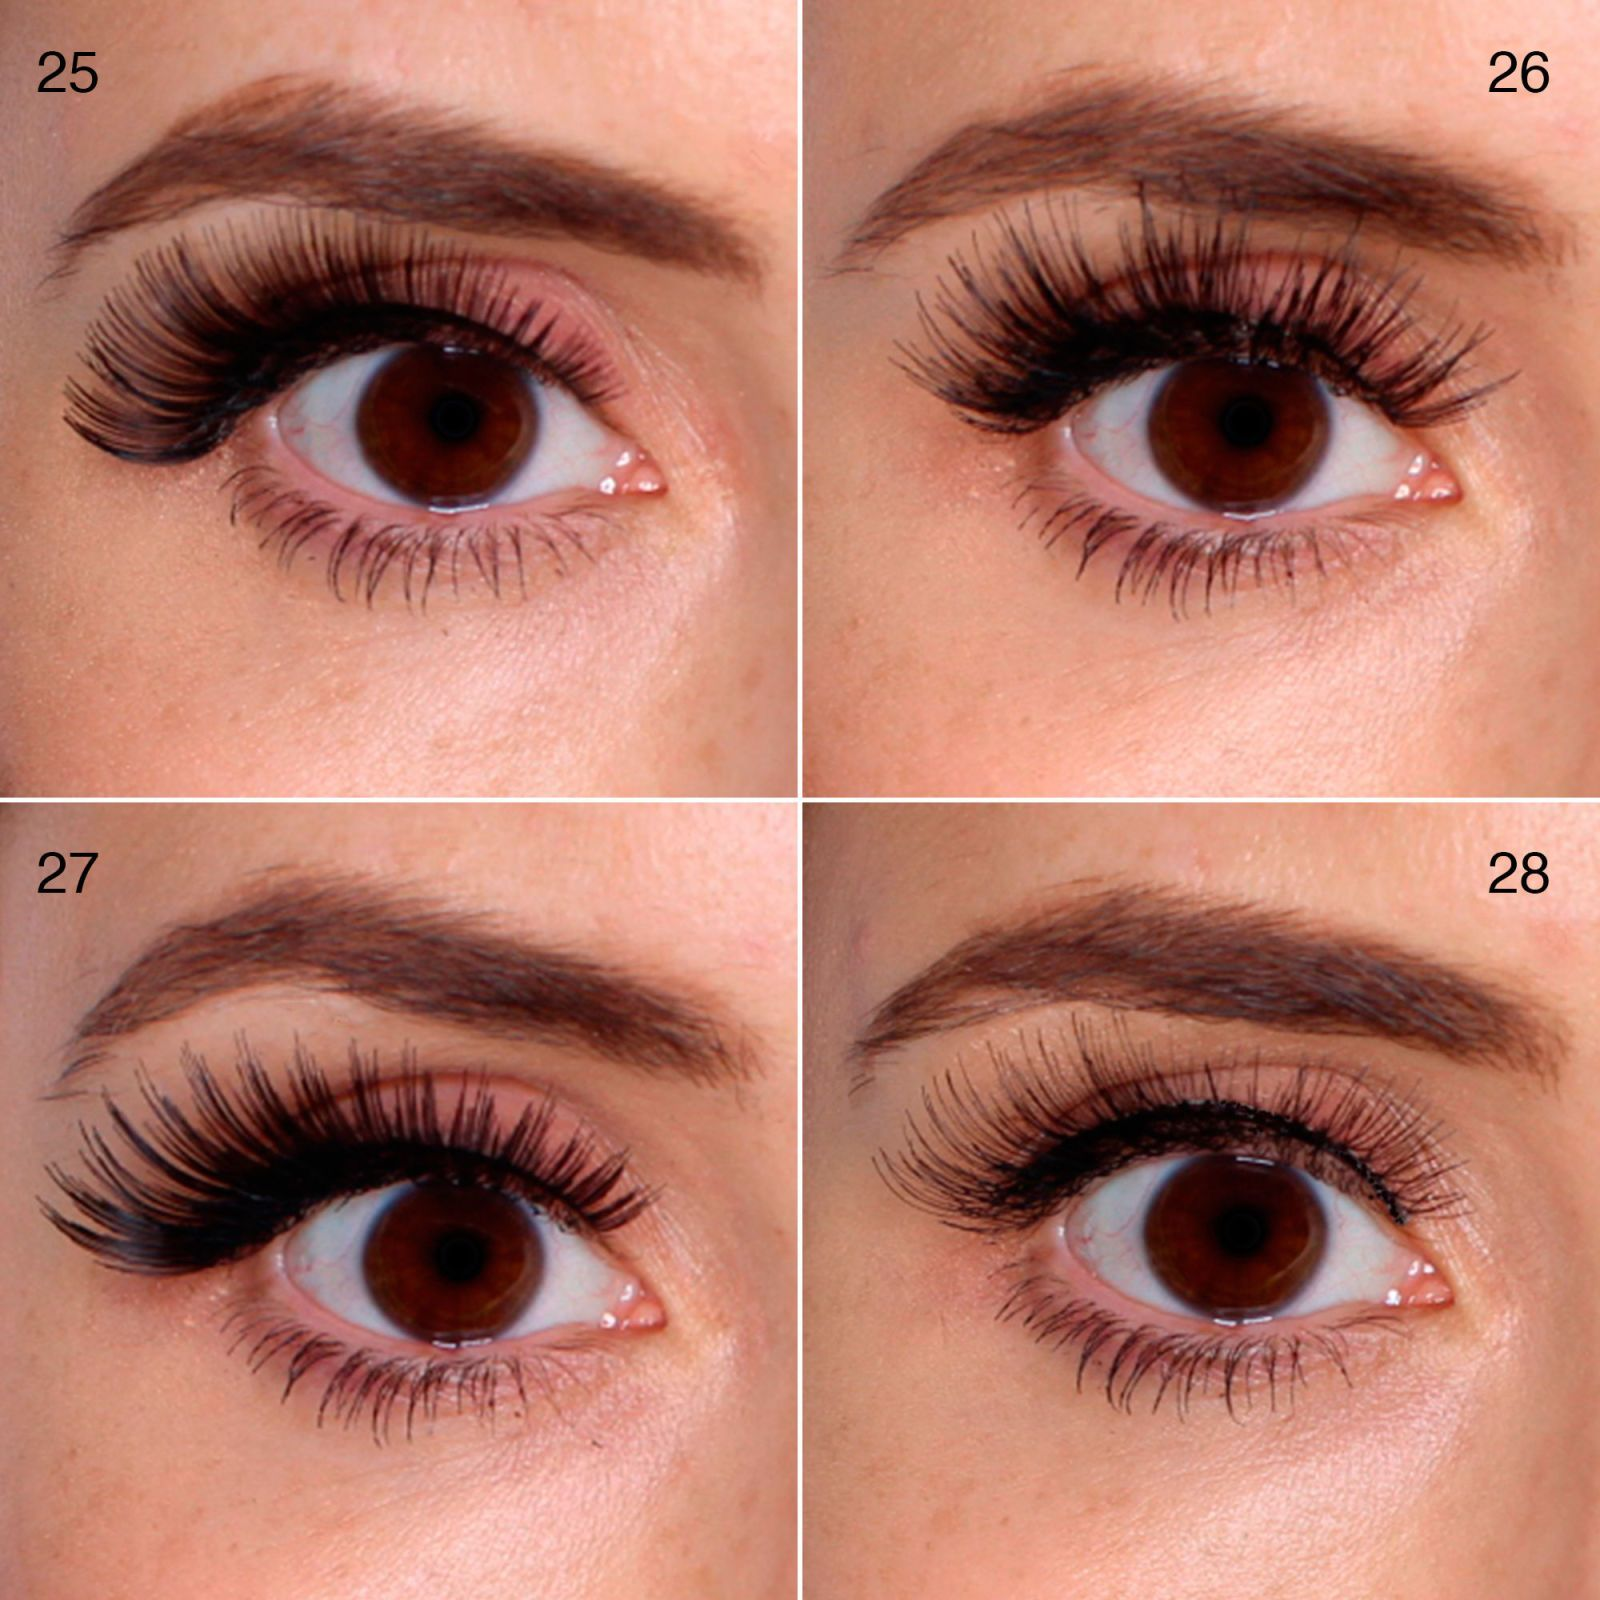 100 False Lashes Tested On One Eye Picture Reviews Lashes